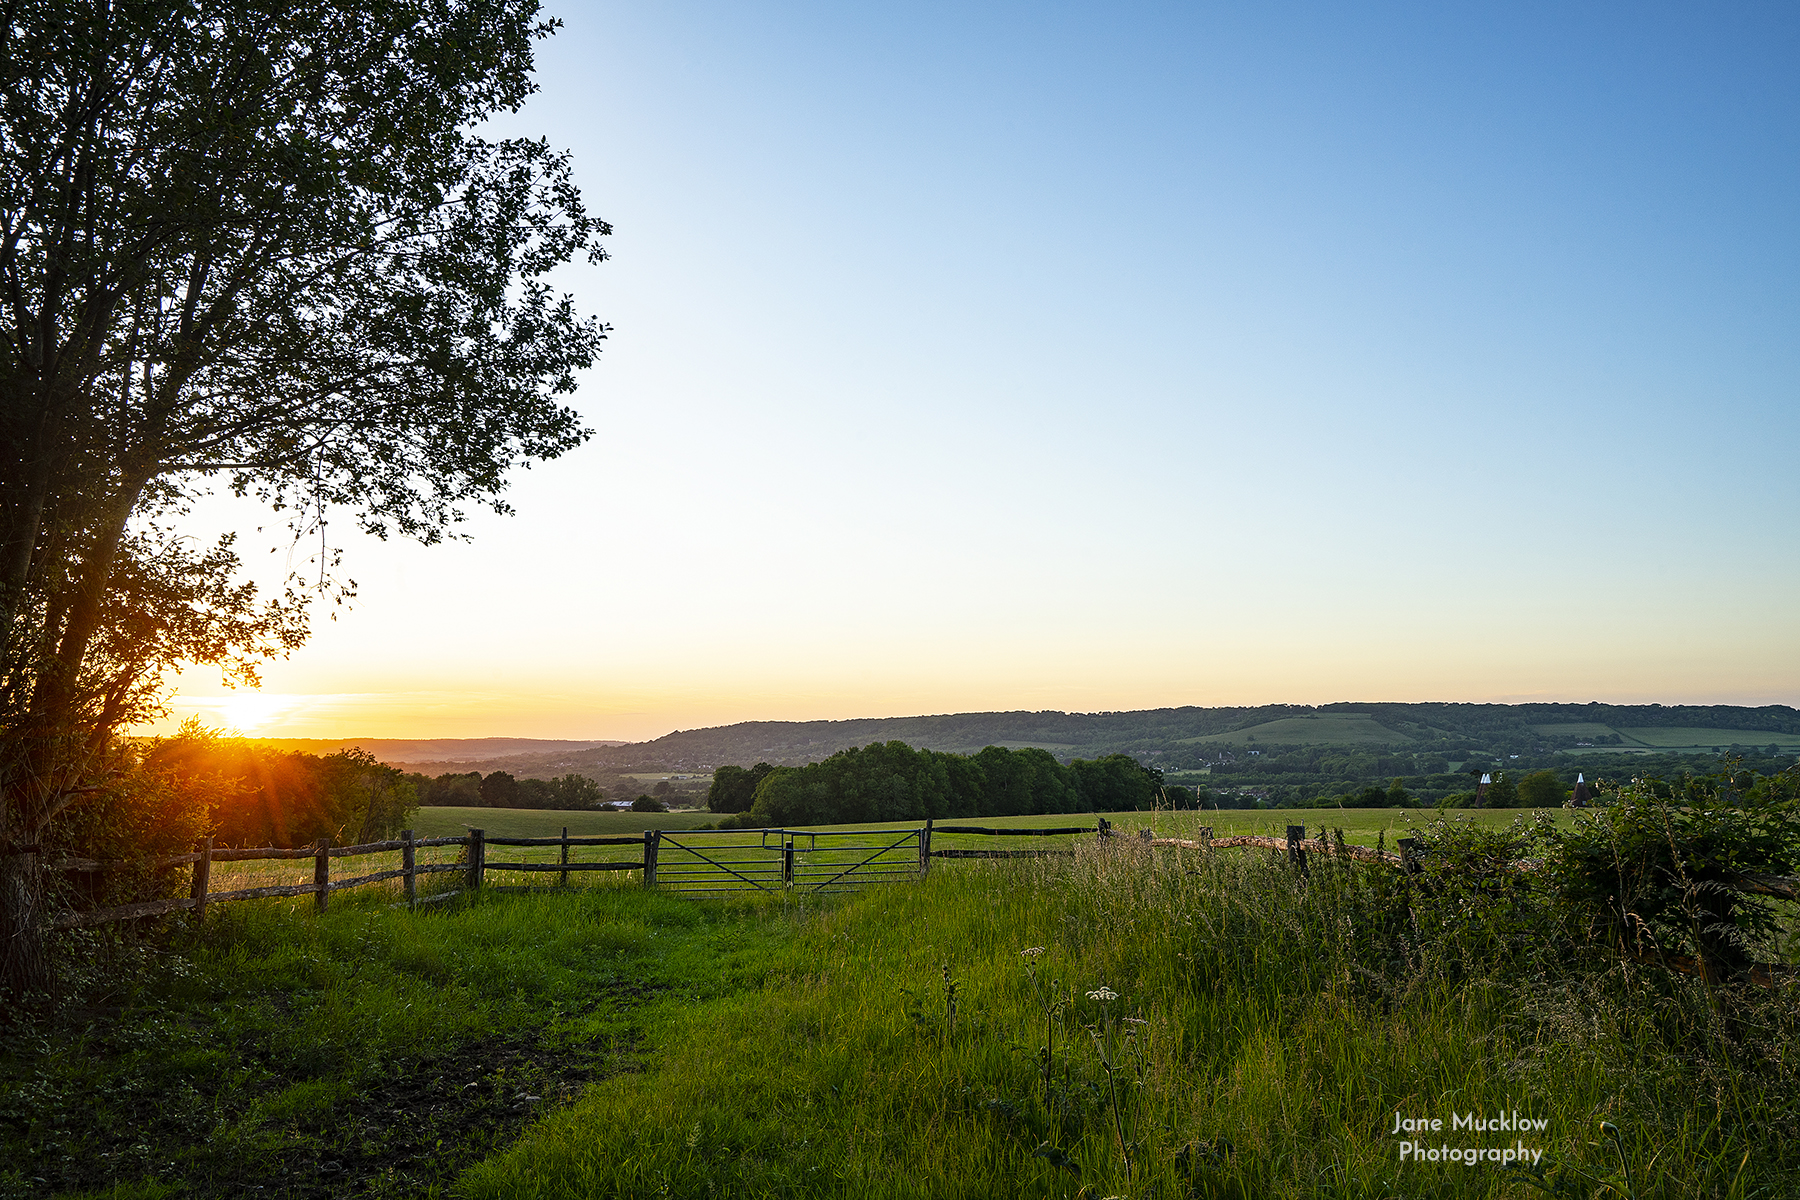 Photo of the view at sunset from Seal Chart towards Kemsing and Otford, by Jane Mucklow